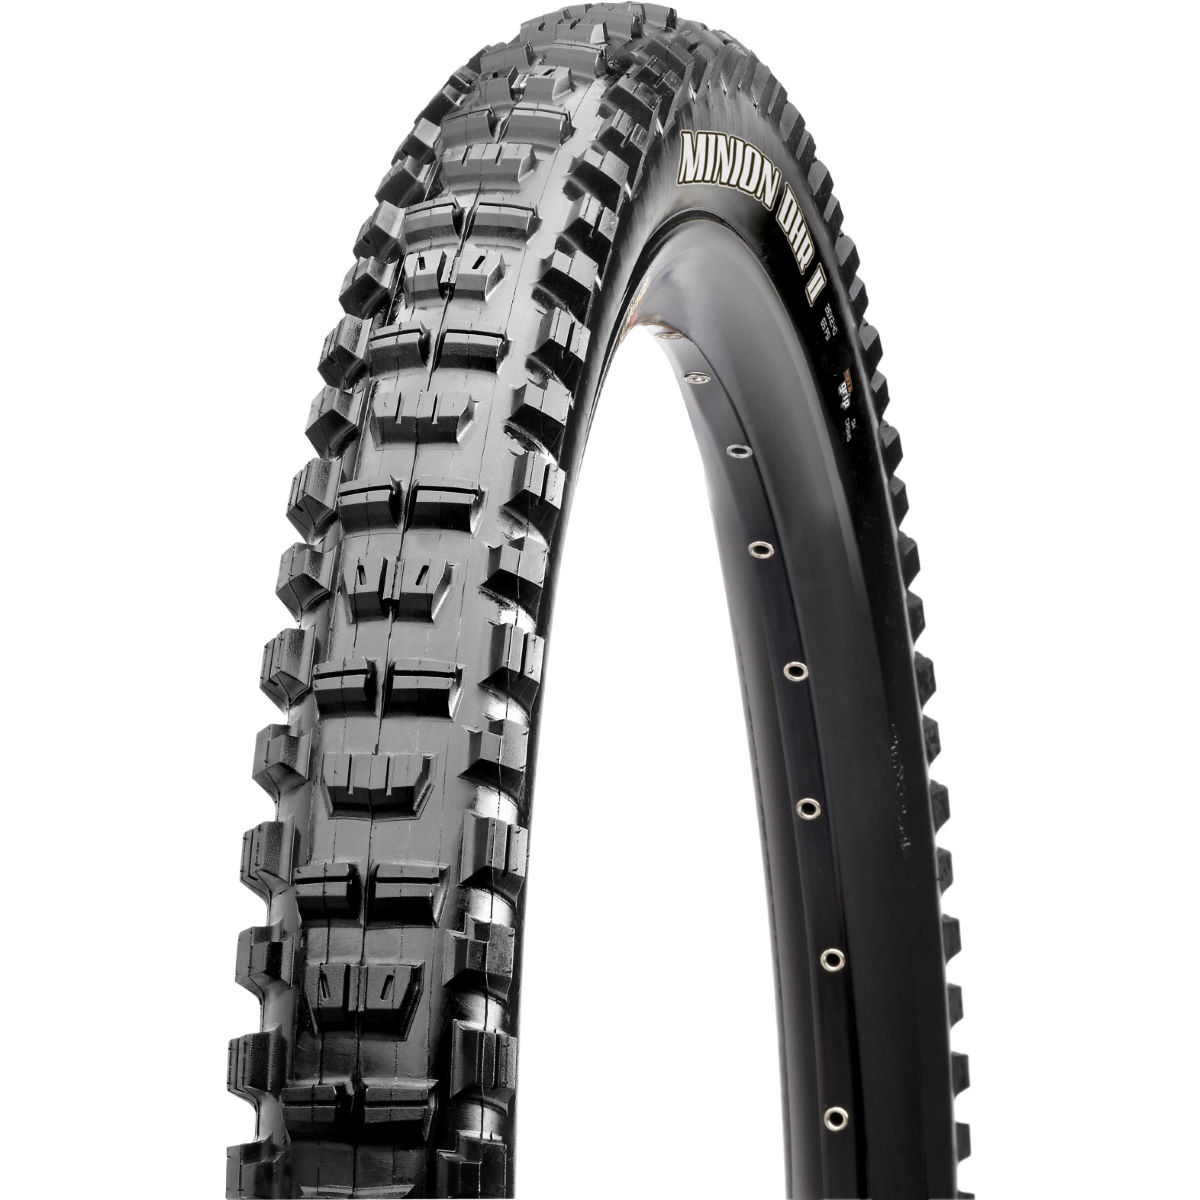 Maxxis Maxxis Minion DHR II Wide Trail Tyre - EXO - TR   Tyres